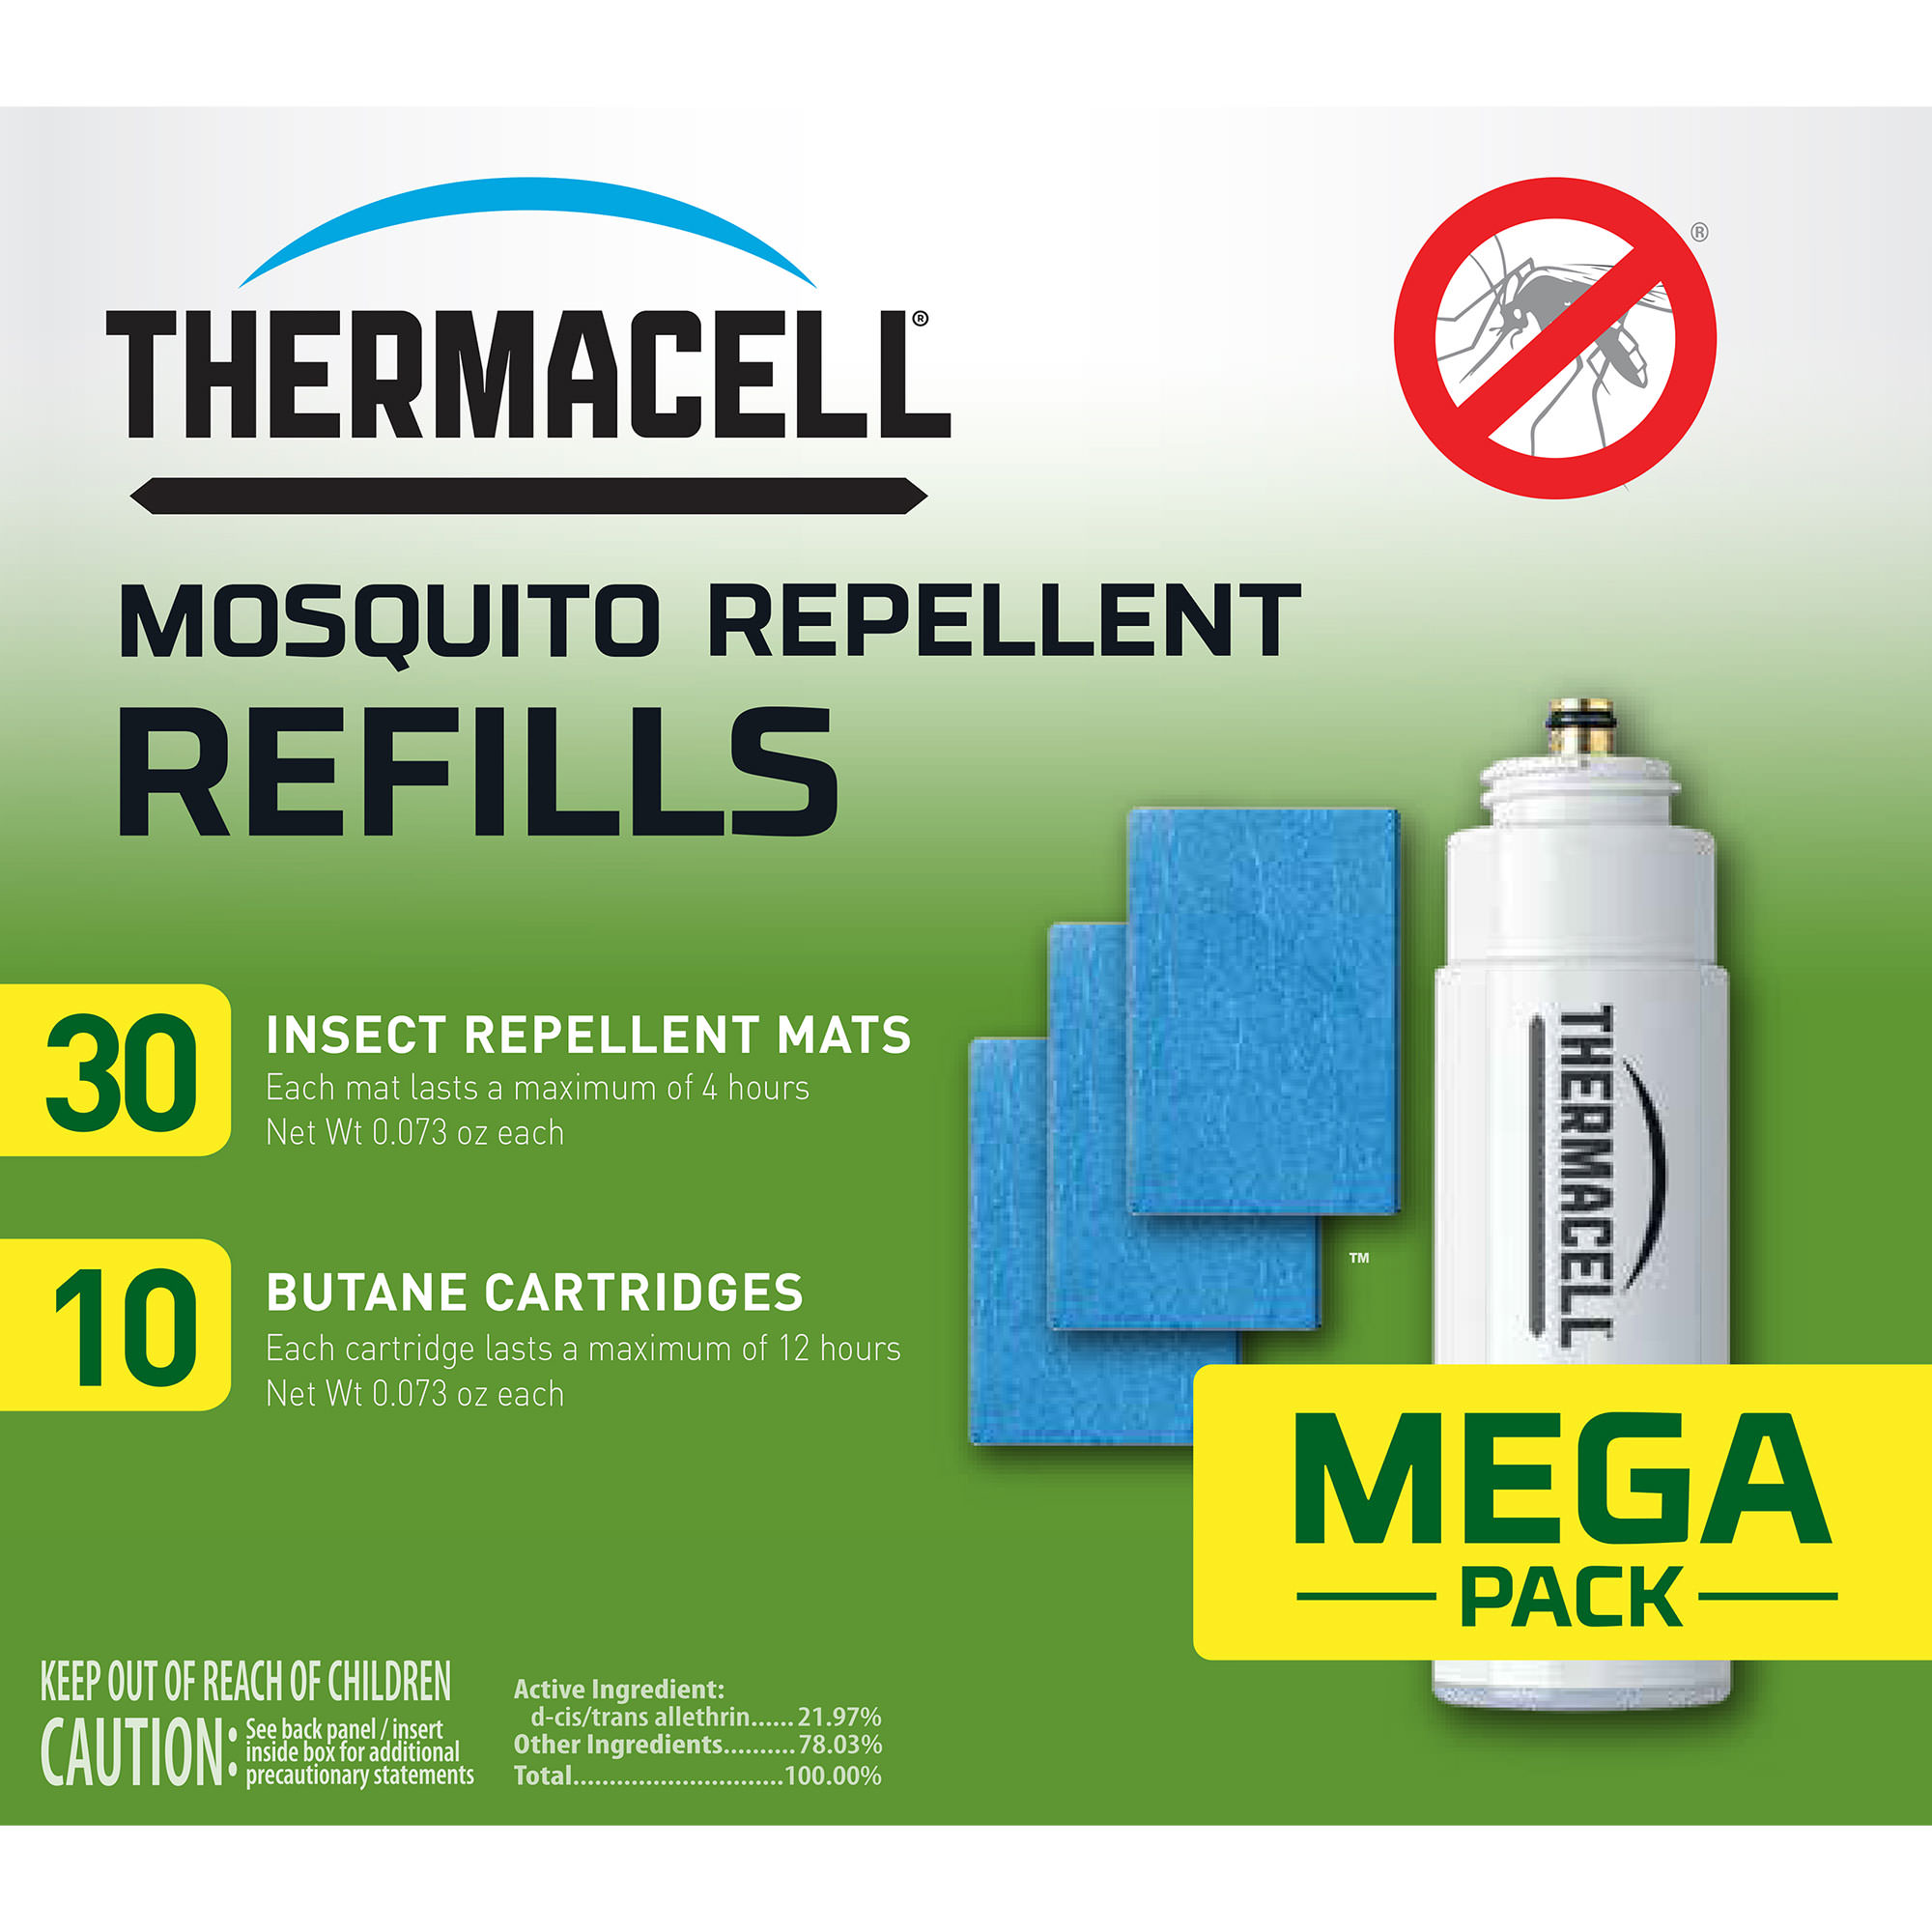 for lifestyle you patio best plants health mosquito your repellent needs home need beauty every hot